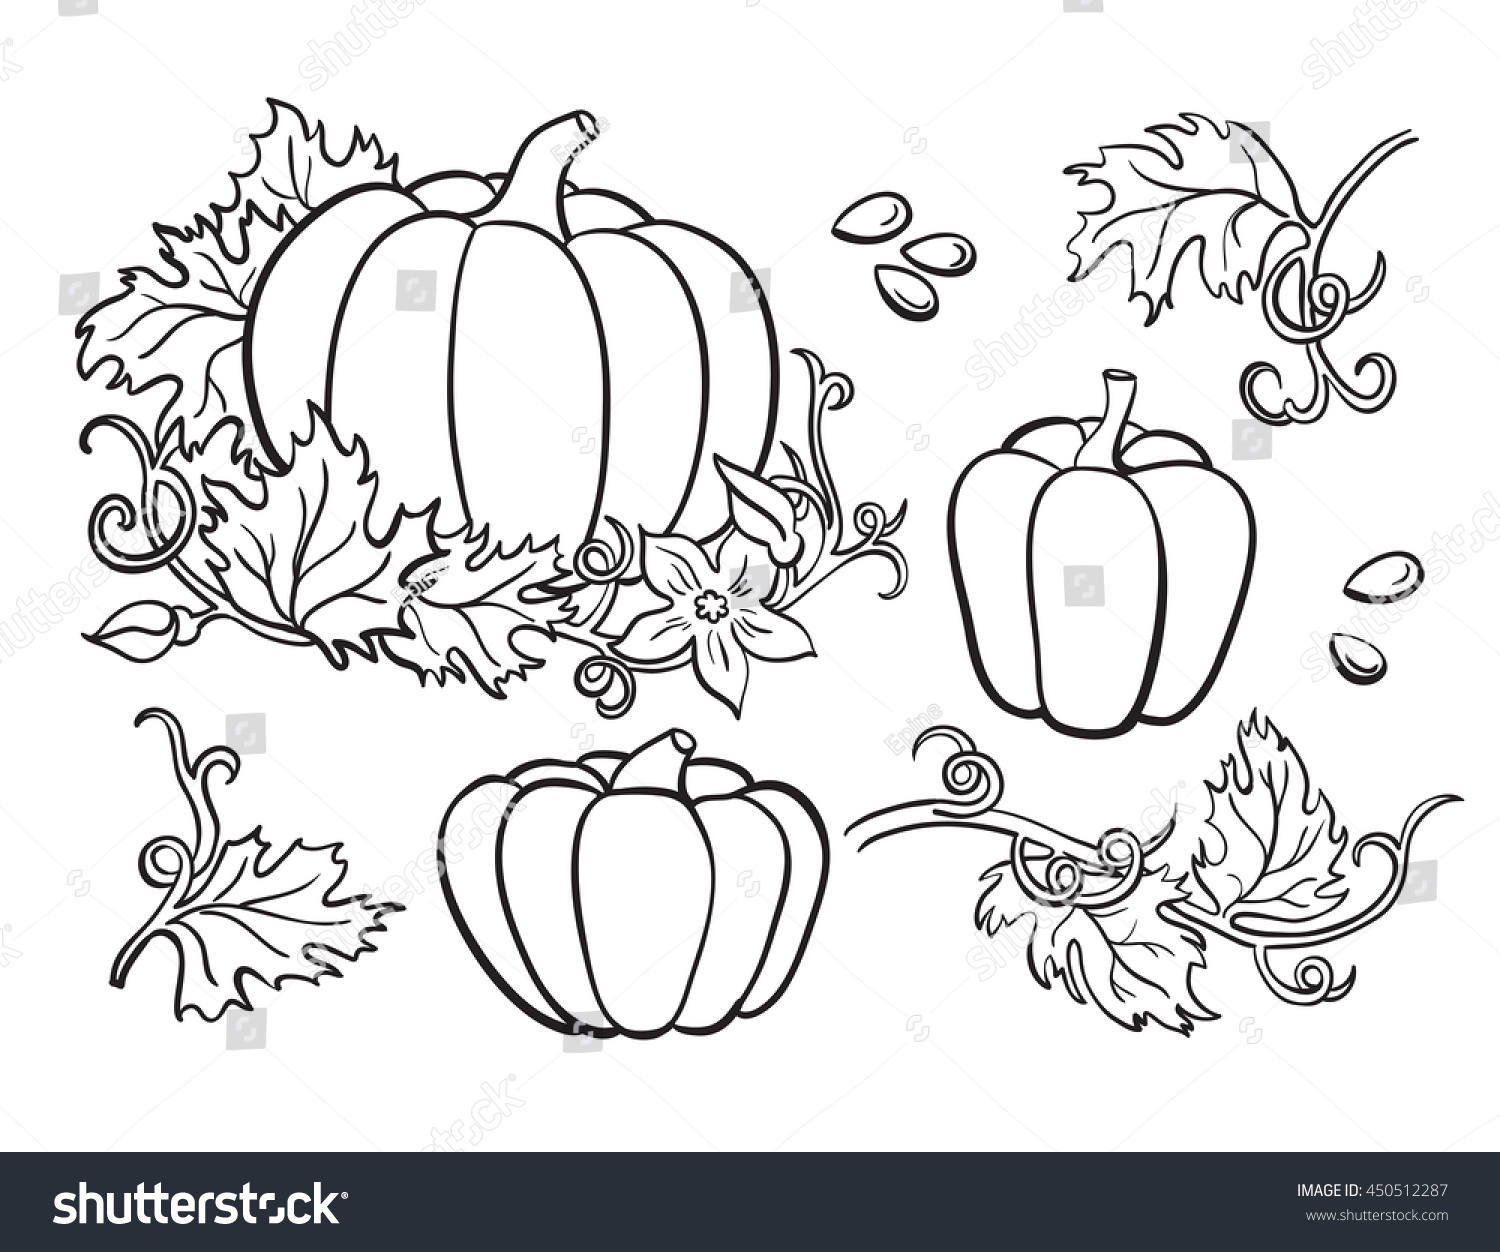 Pumpkin Vector Drawing Set Isolated Outline Stock Vector 450512287 ...